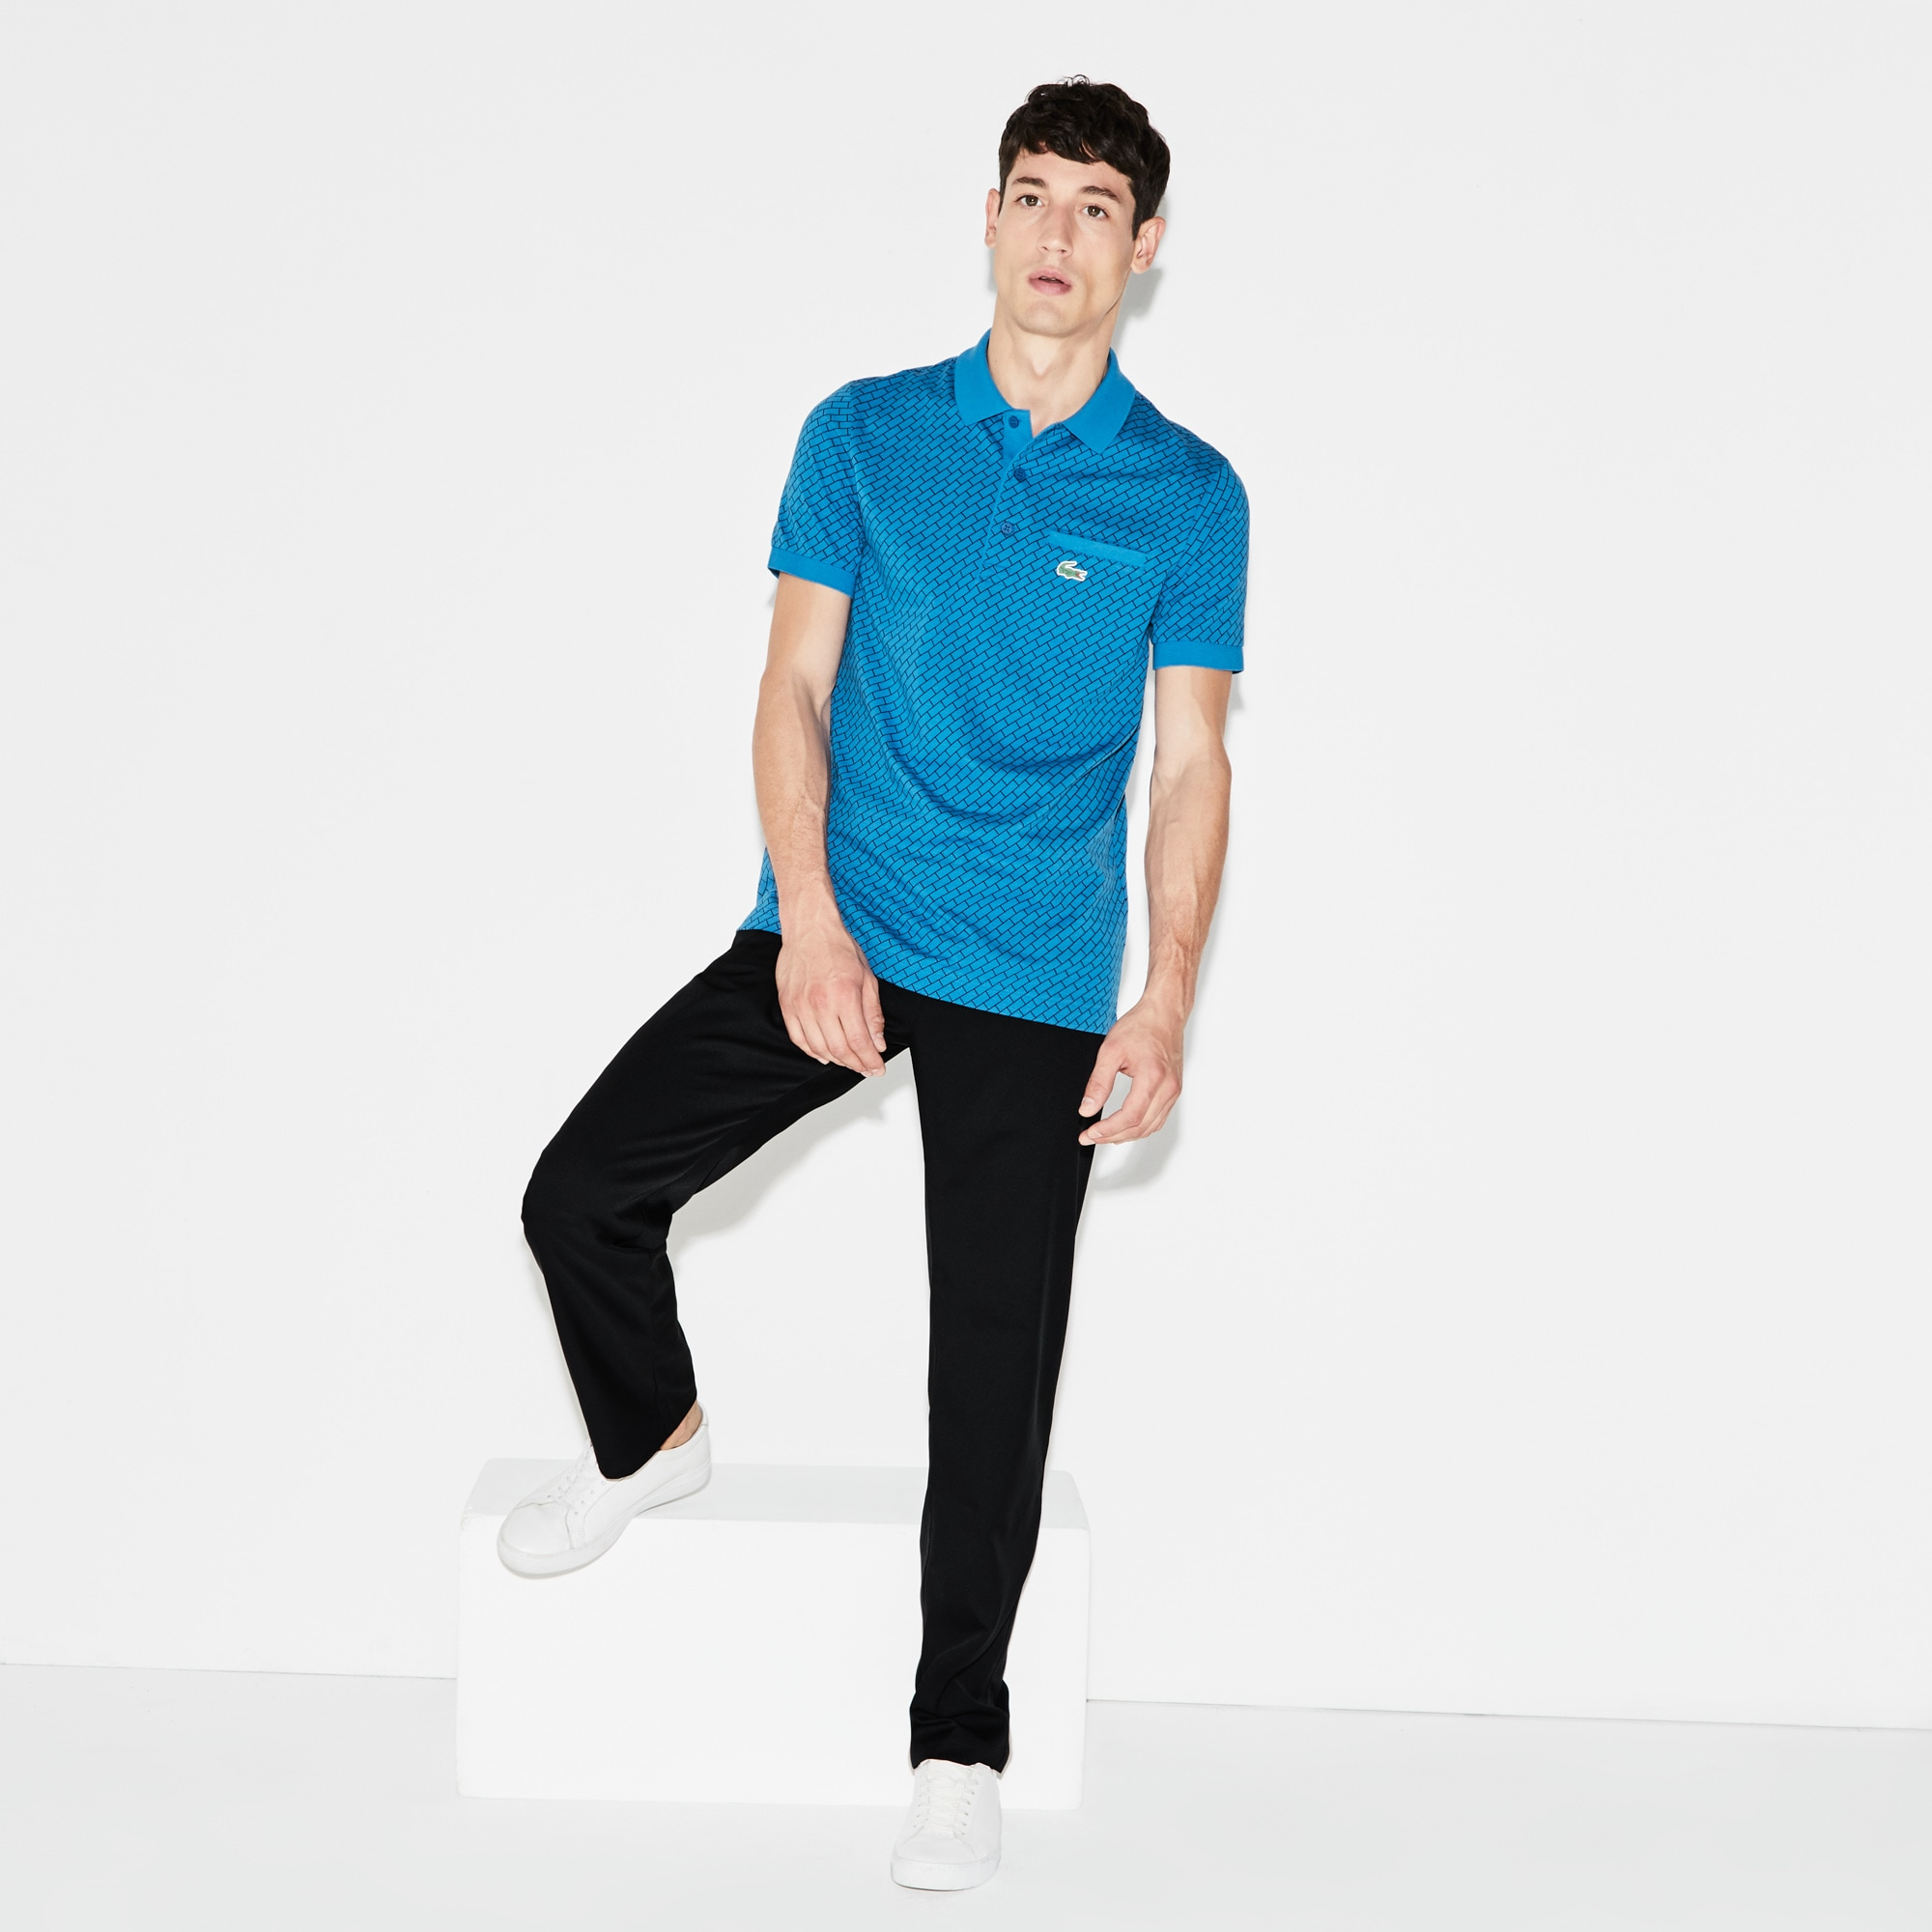 472fb60509 Men's Tall Tee Shirts | Lacoste Big & Tall Tees | Lacoste